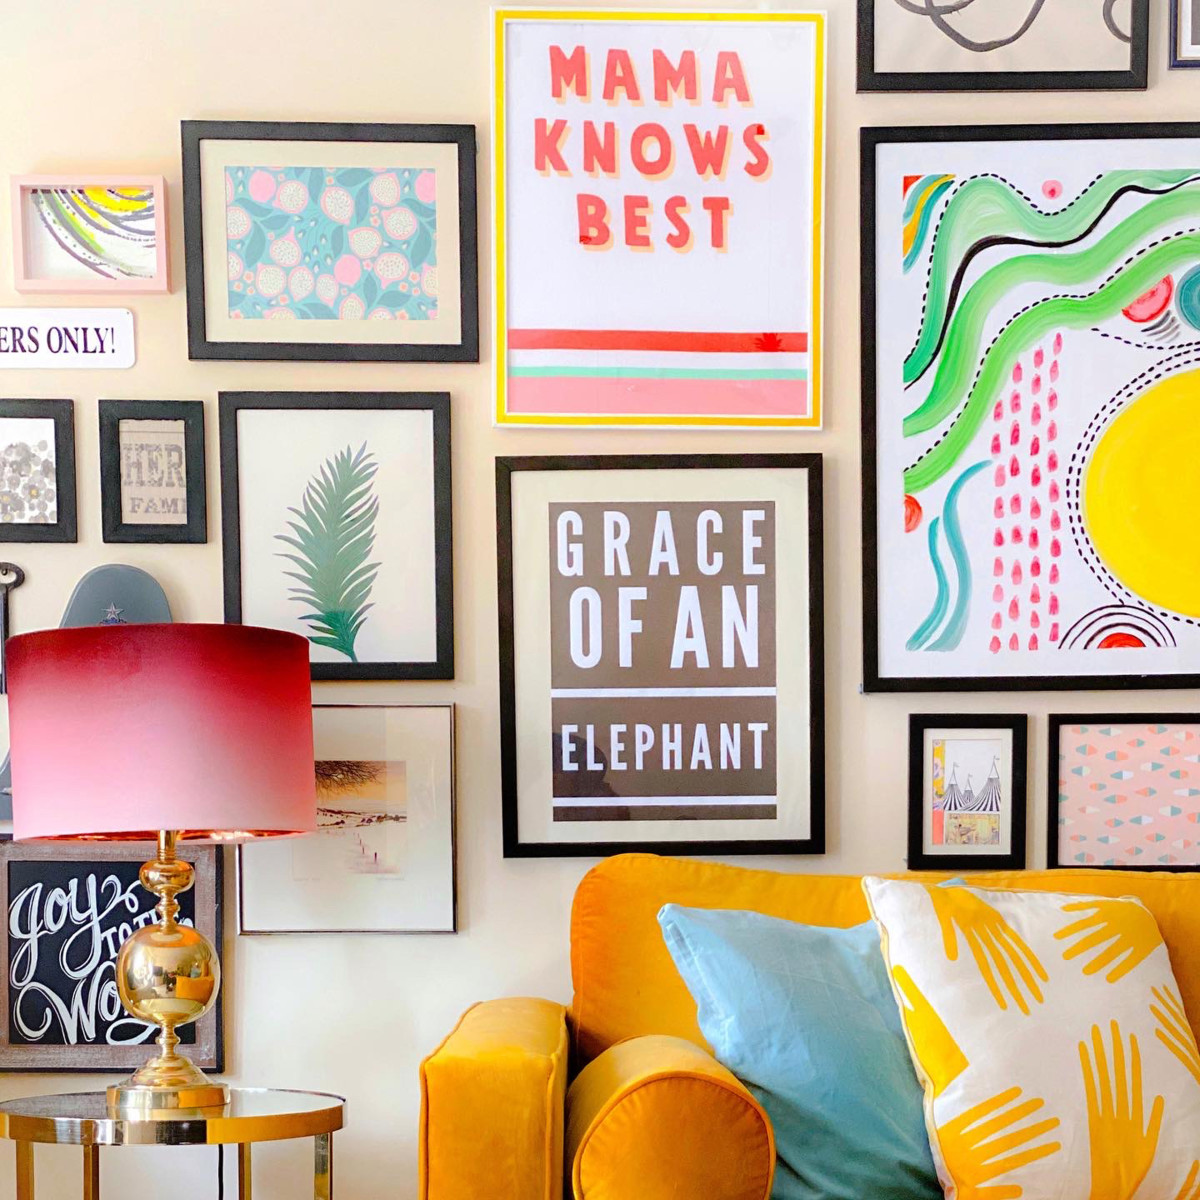 This Home's Absolutely Packed with Colorful and Clever Renter-Friendly Decor Hacks